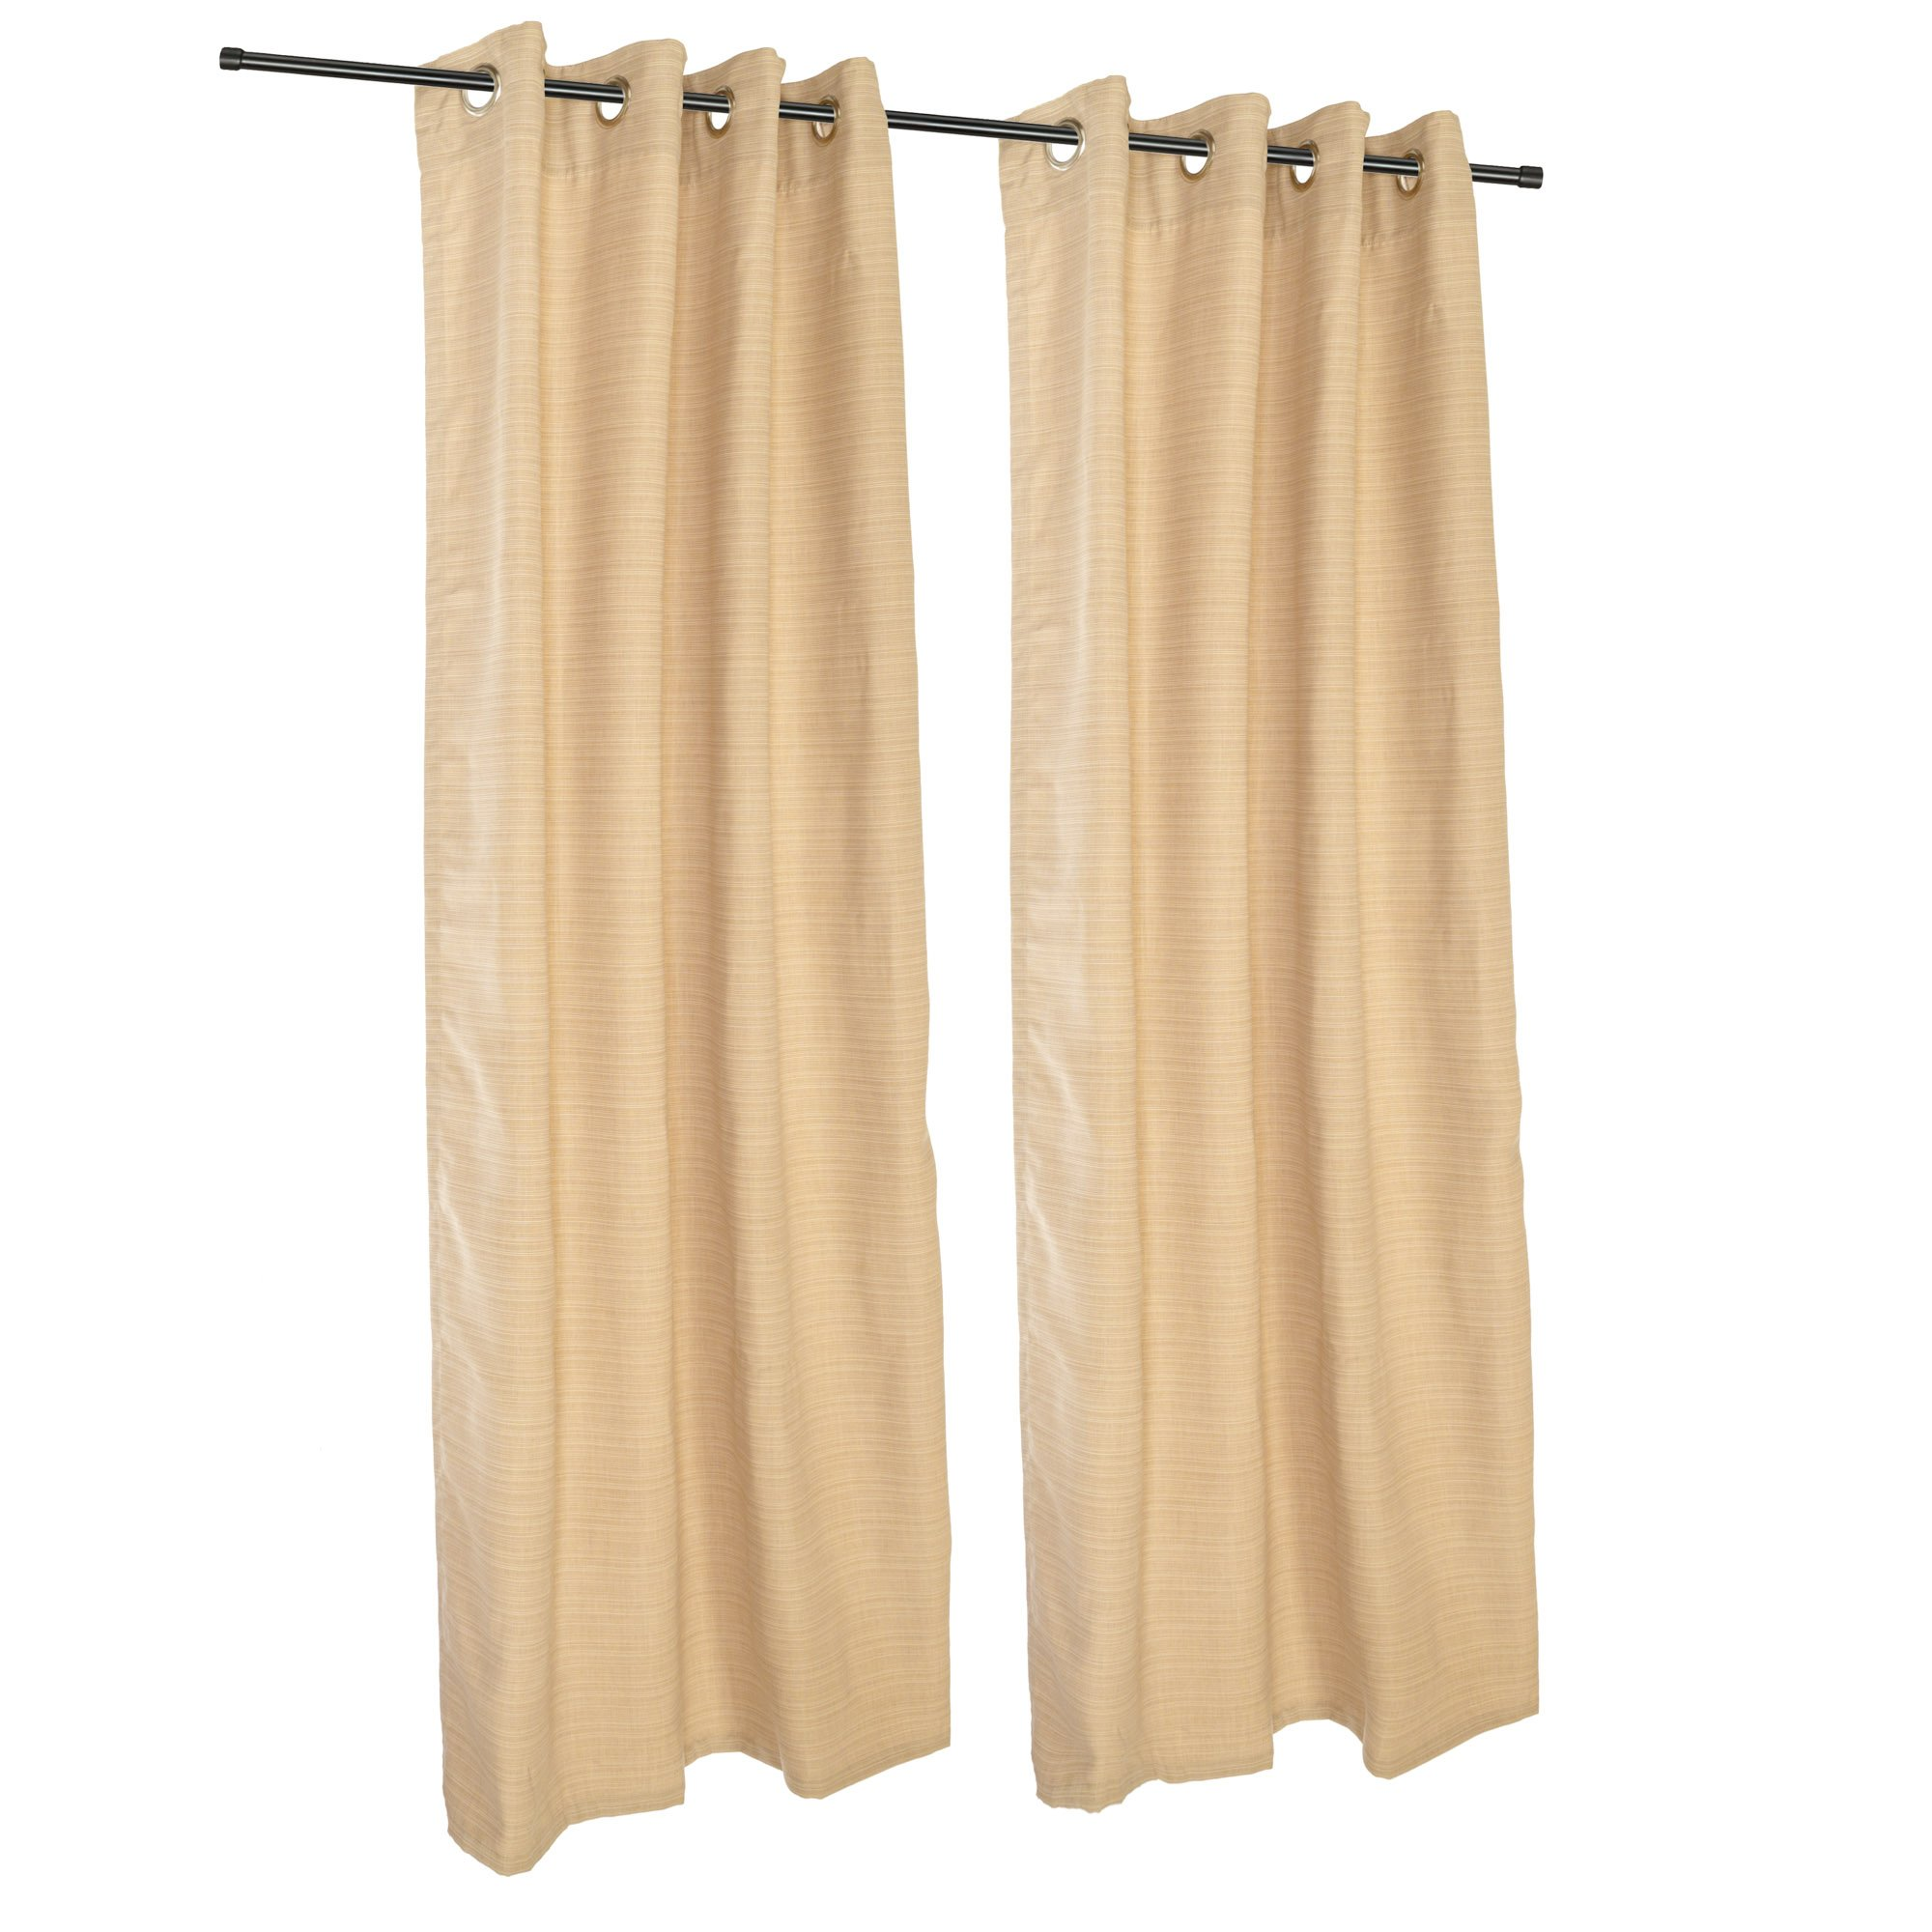 Sunbrella Outdoor Curtain with Grommets-Nickle Grommets-Dupione Bamboo